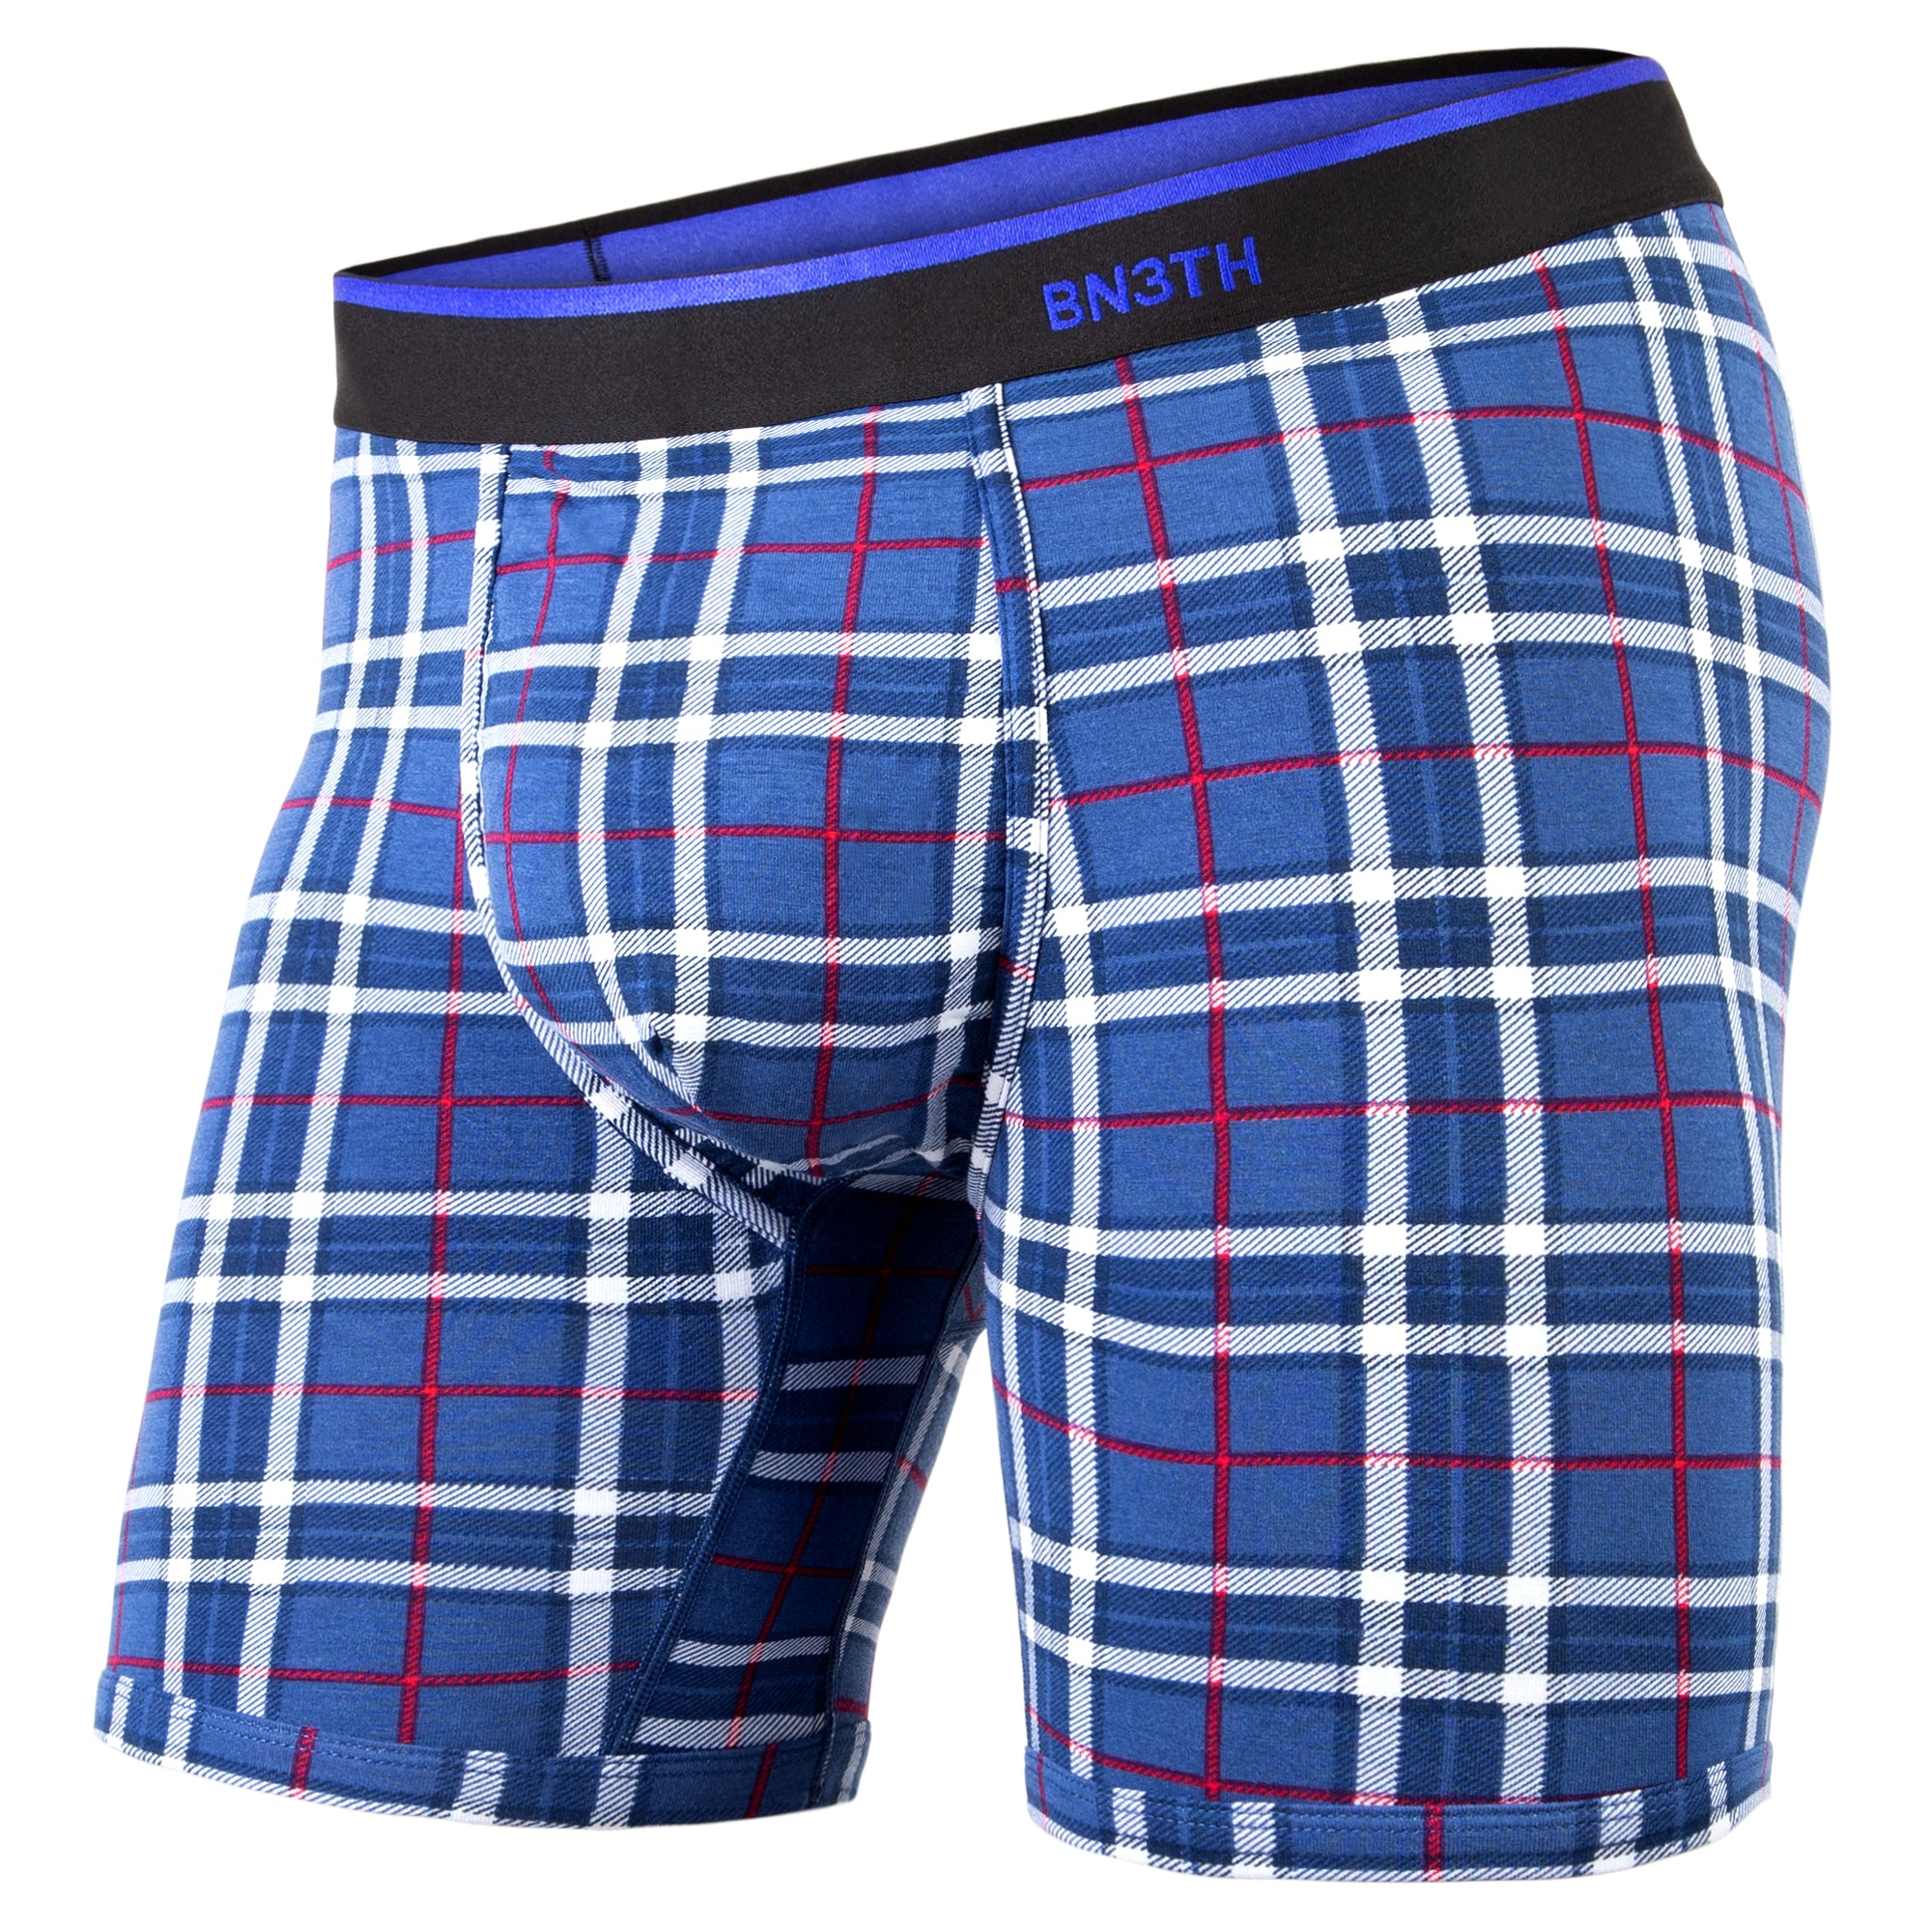 Boxer Bn3th classic print fireside plaid navy